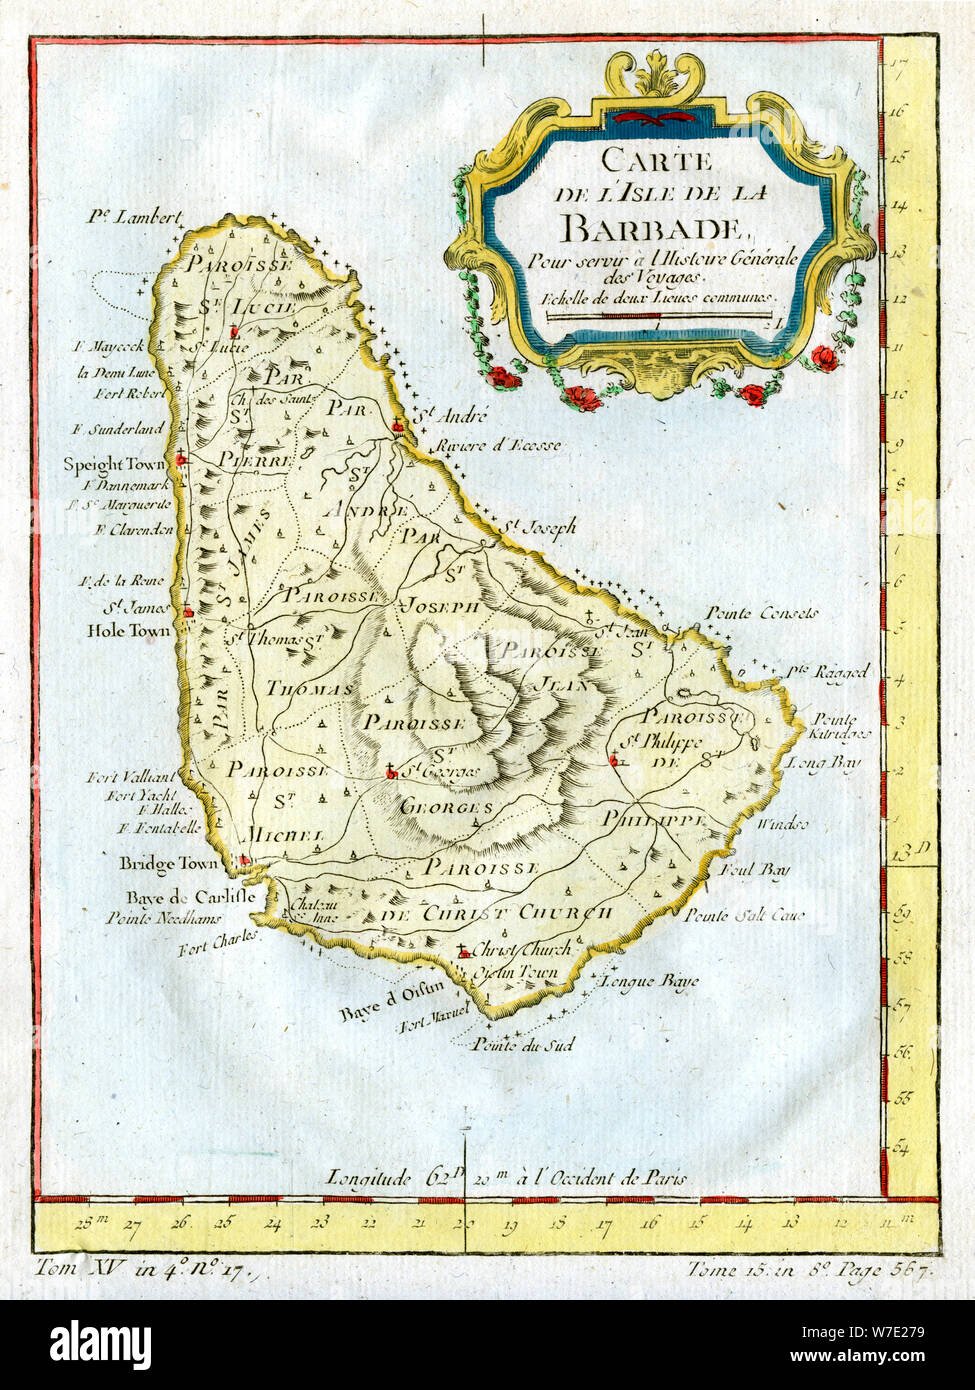 Map of Barbados, c1764. Artist: Unknown Stock Photo